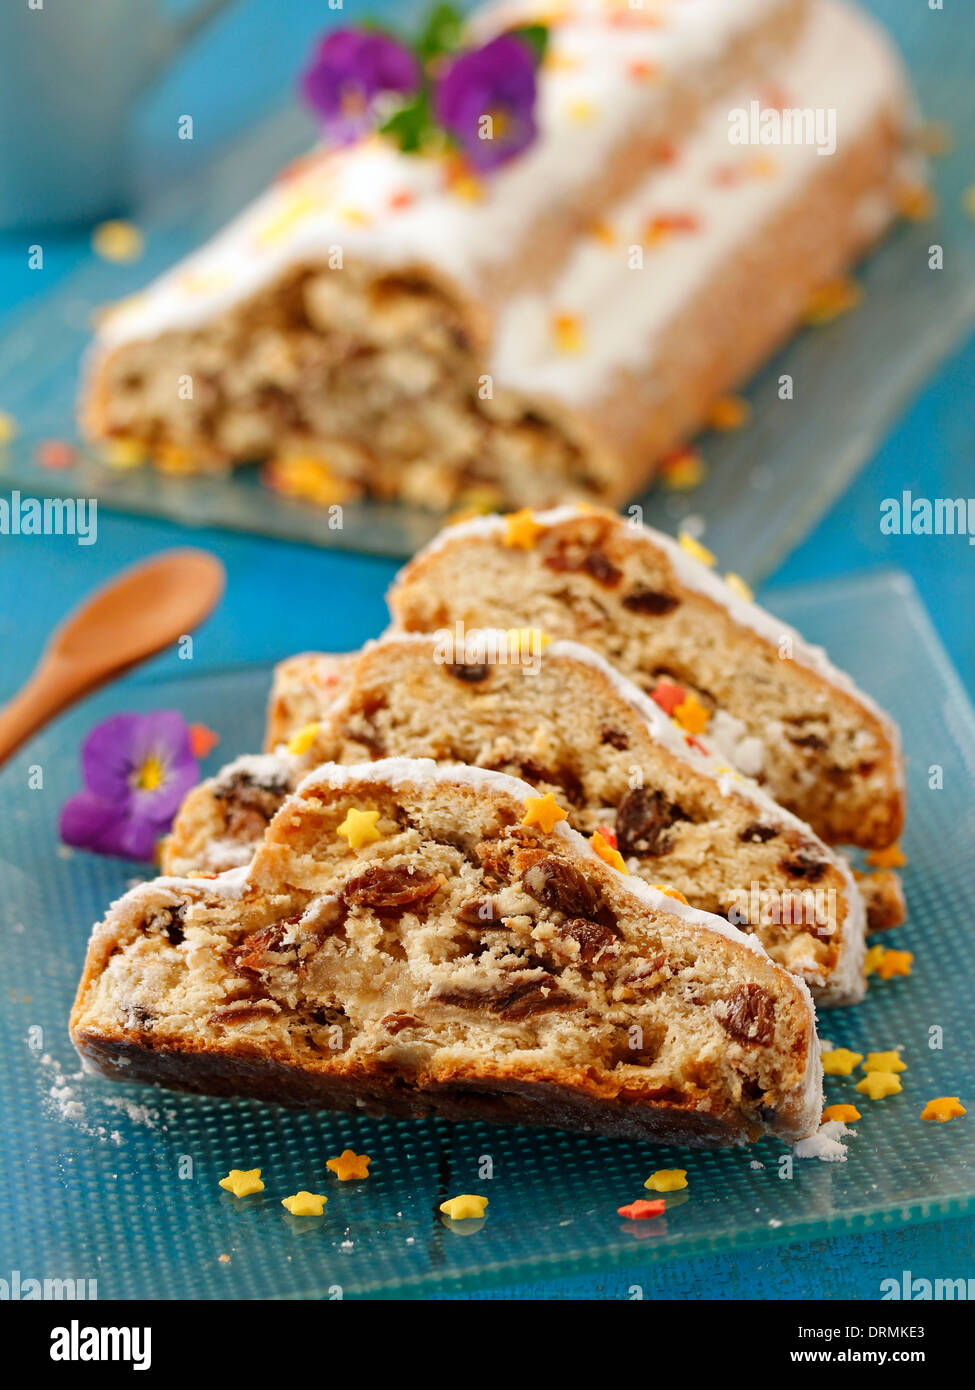 Marzipan cake with raisins (Stollen). Recipe available. - Stock Image